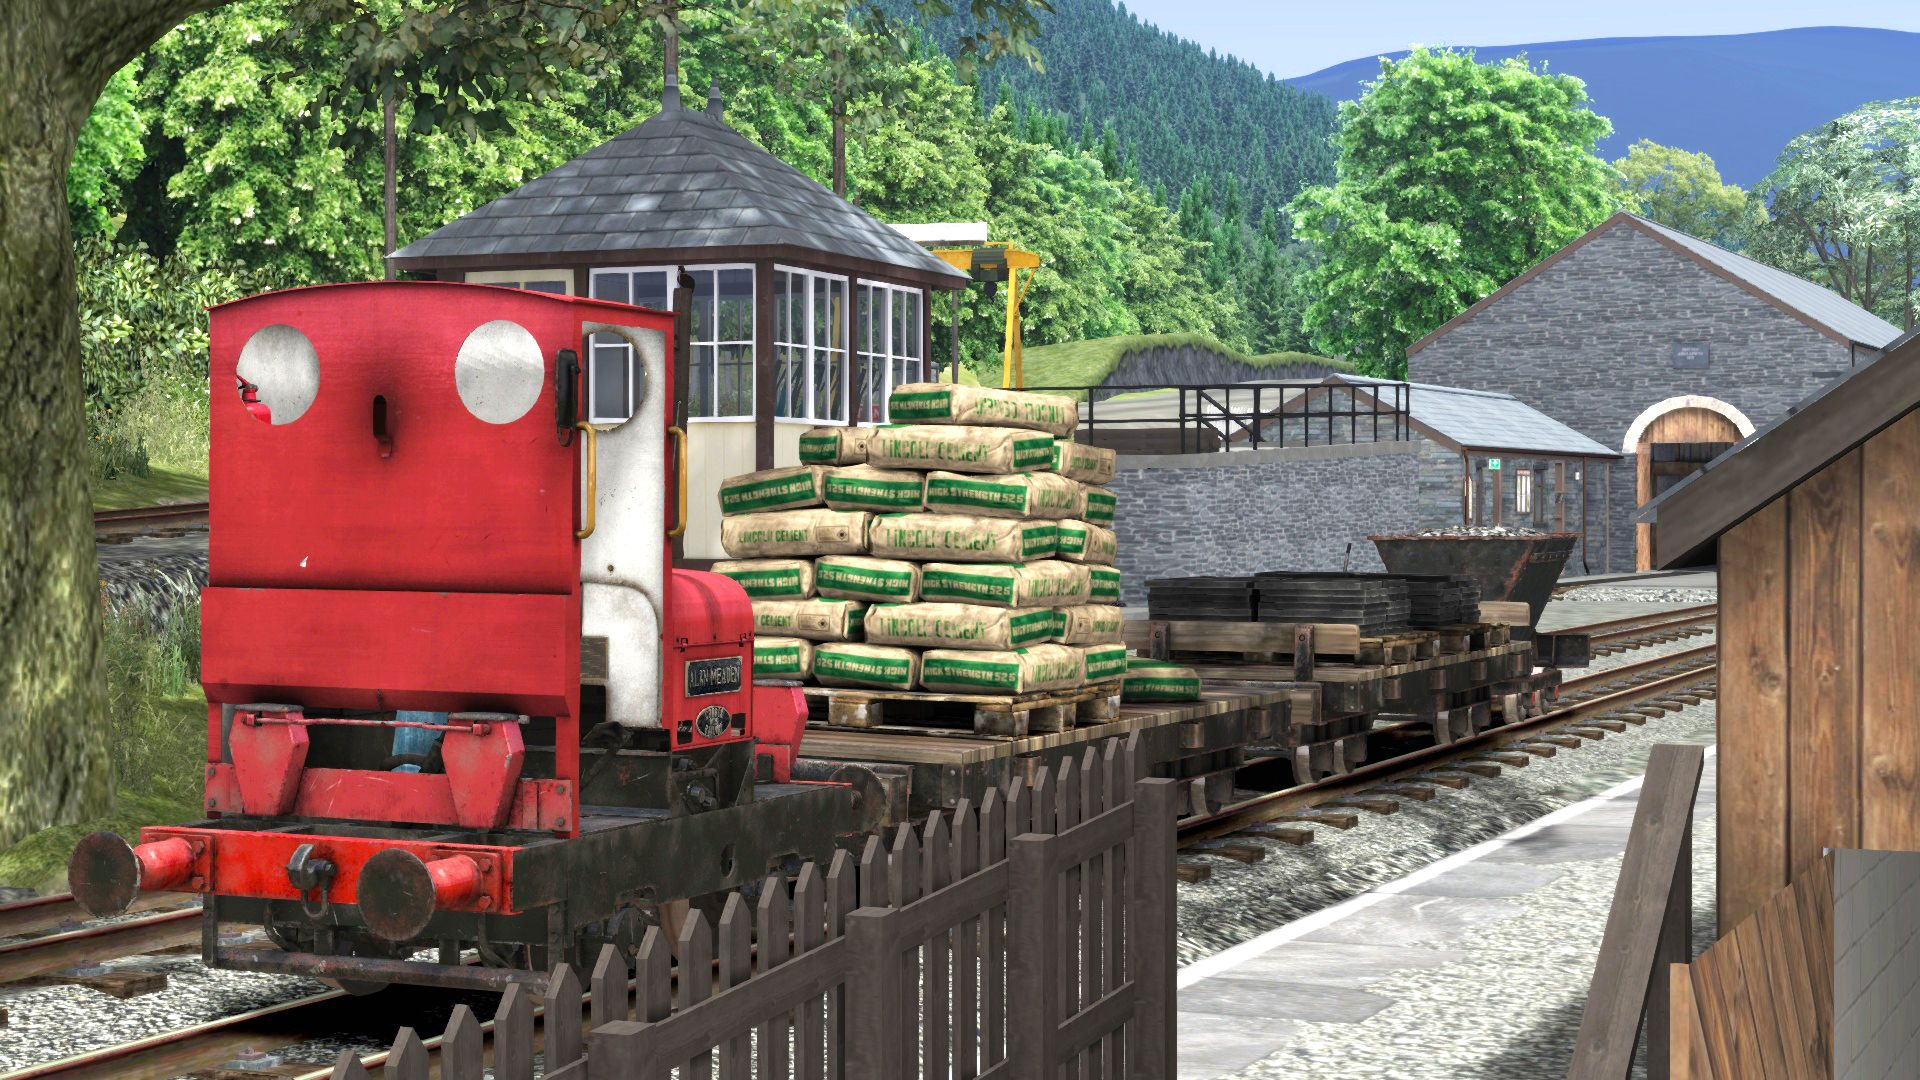 Image showing a locomotive from the Corris Railway Expansion Pack